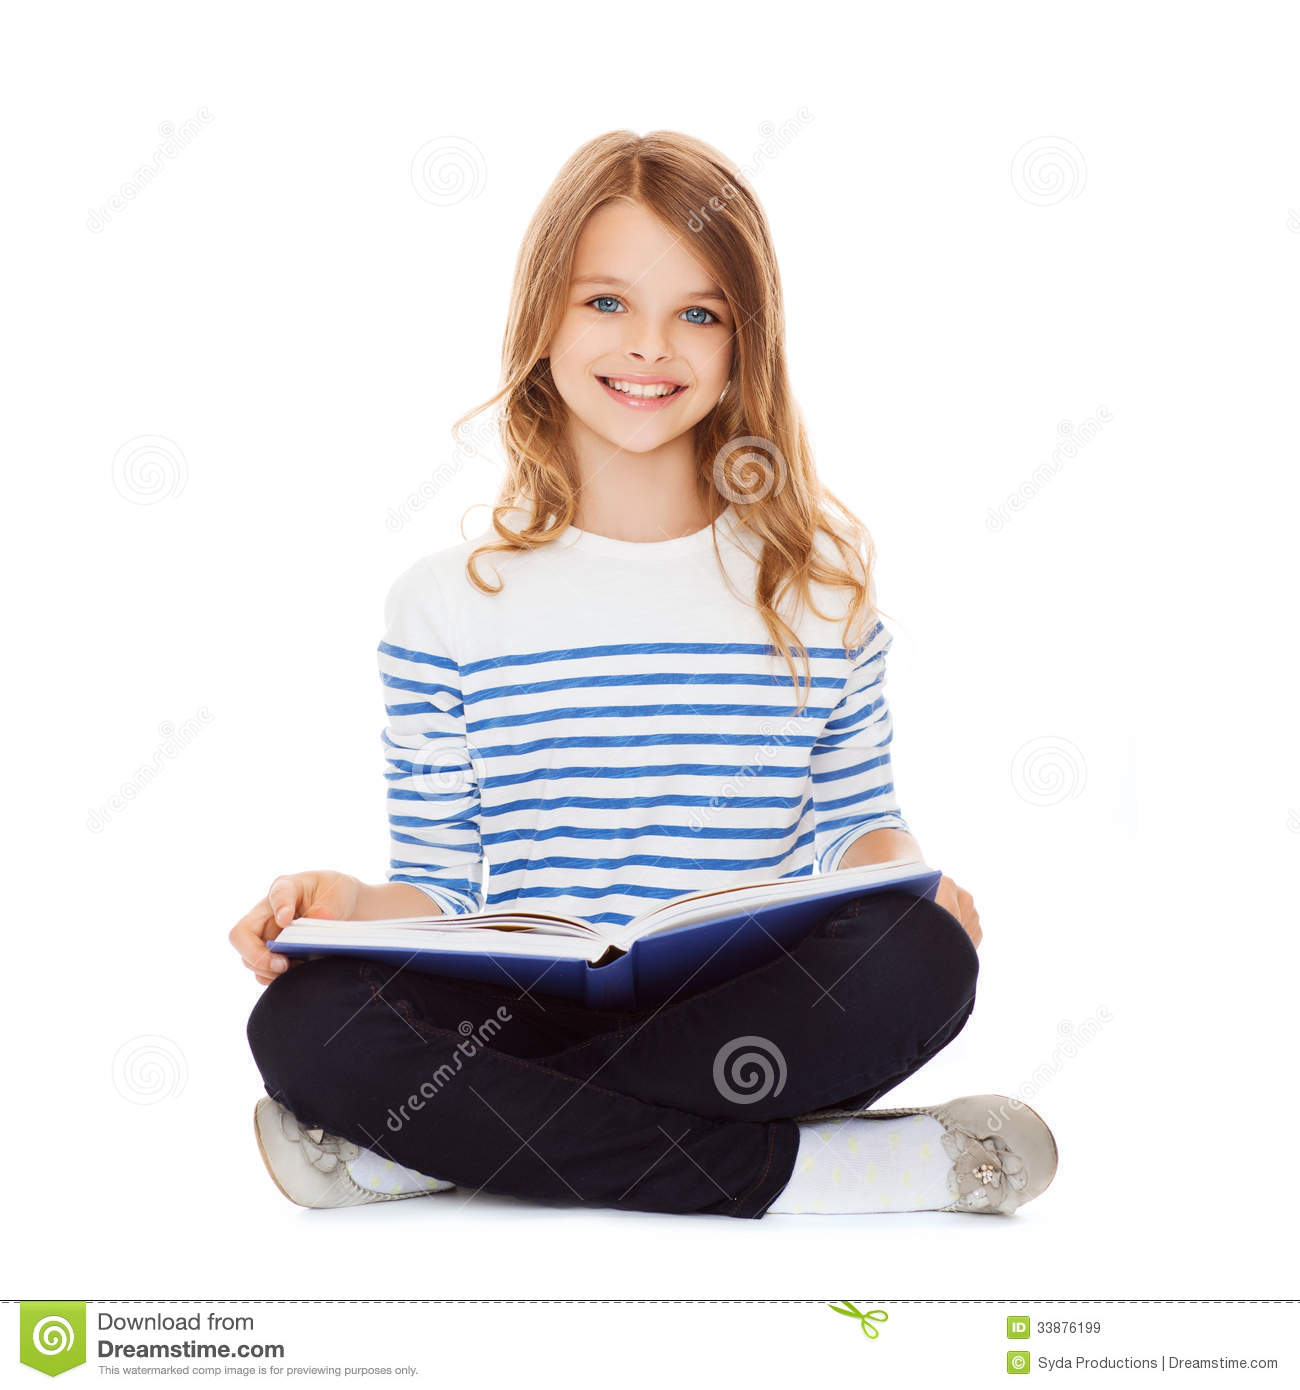 Schools Education6 25 18students: Student Girl Studying And Reading Book Stock Image